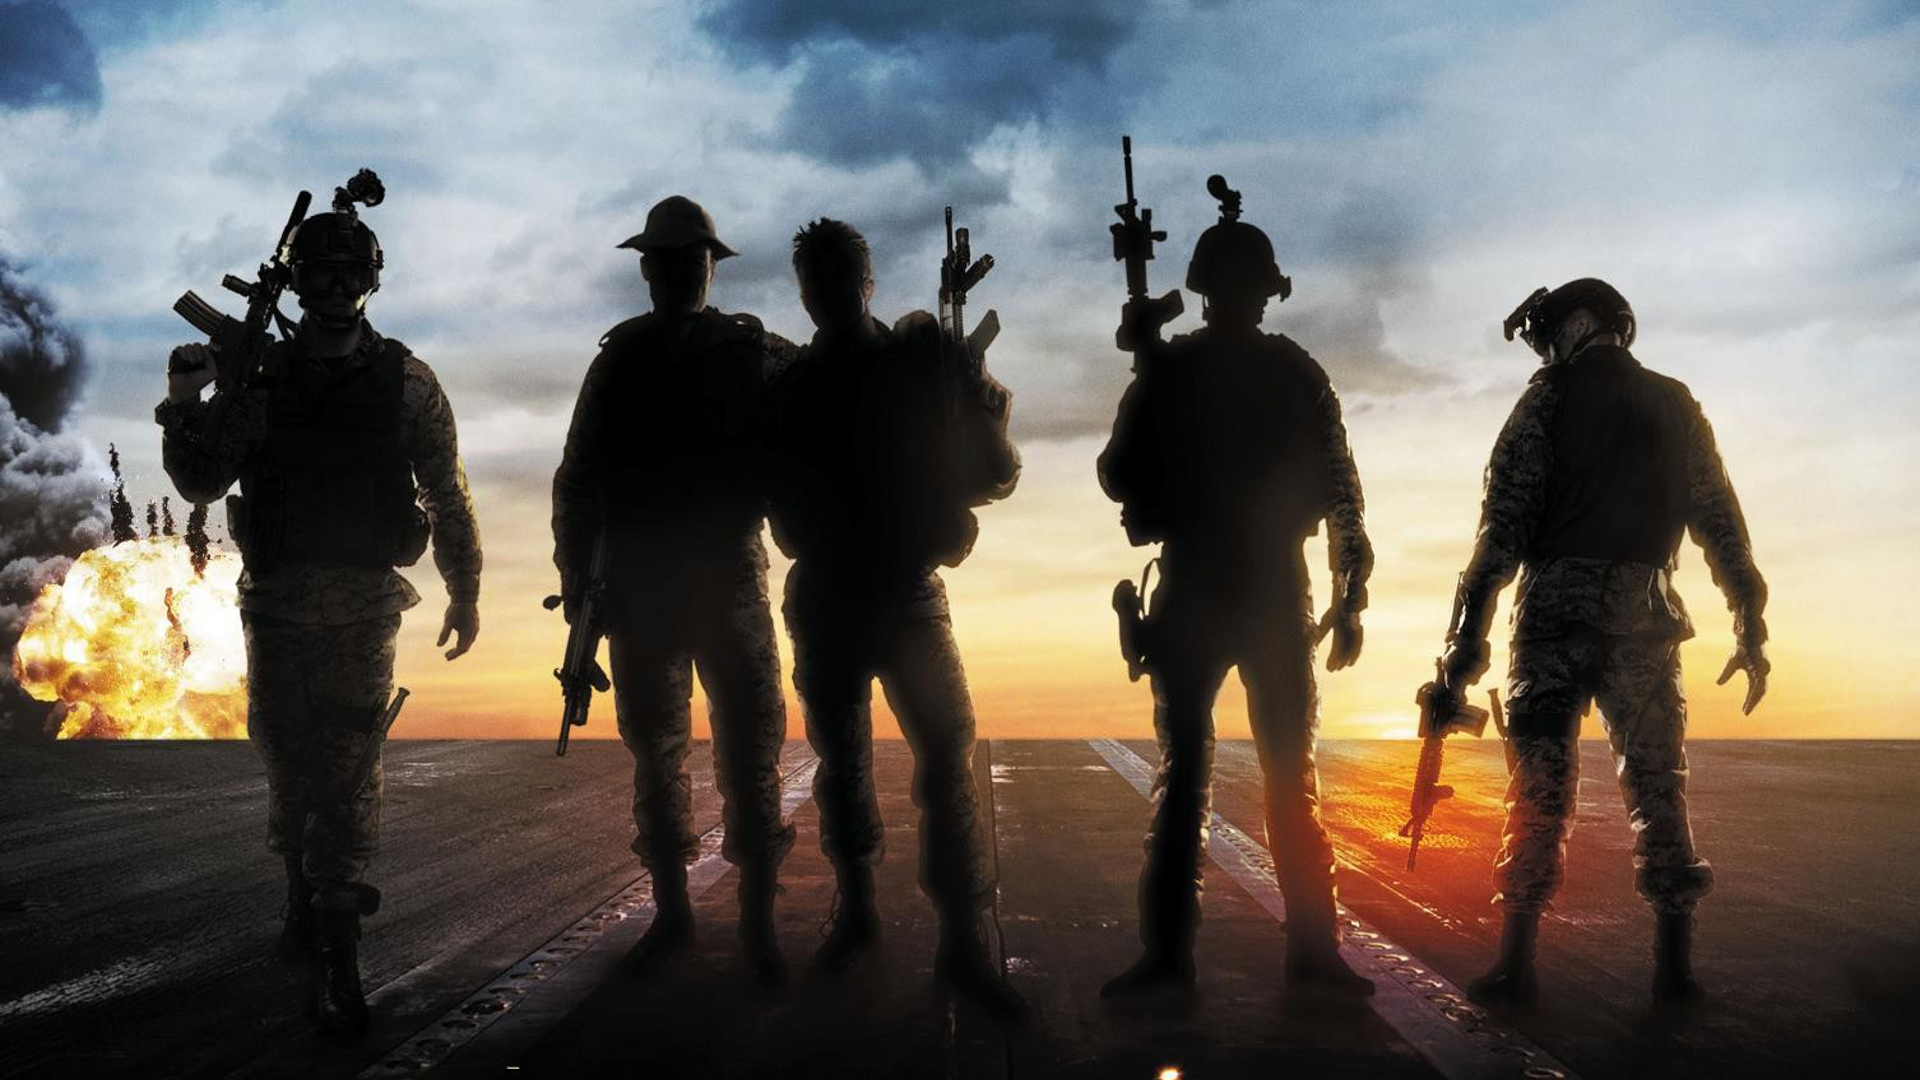 Act of Valor wallpaper 1